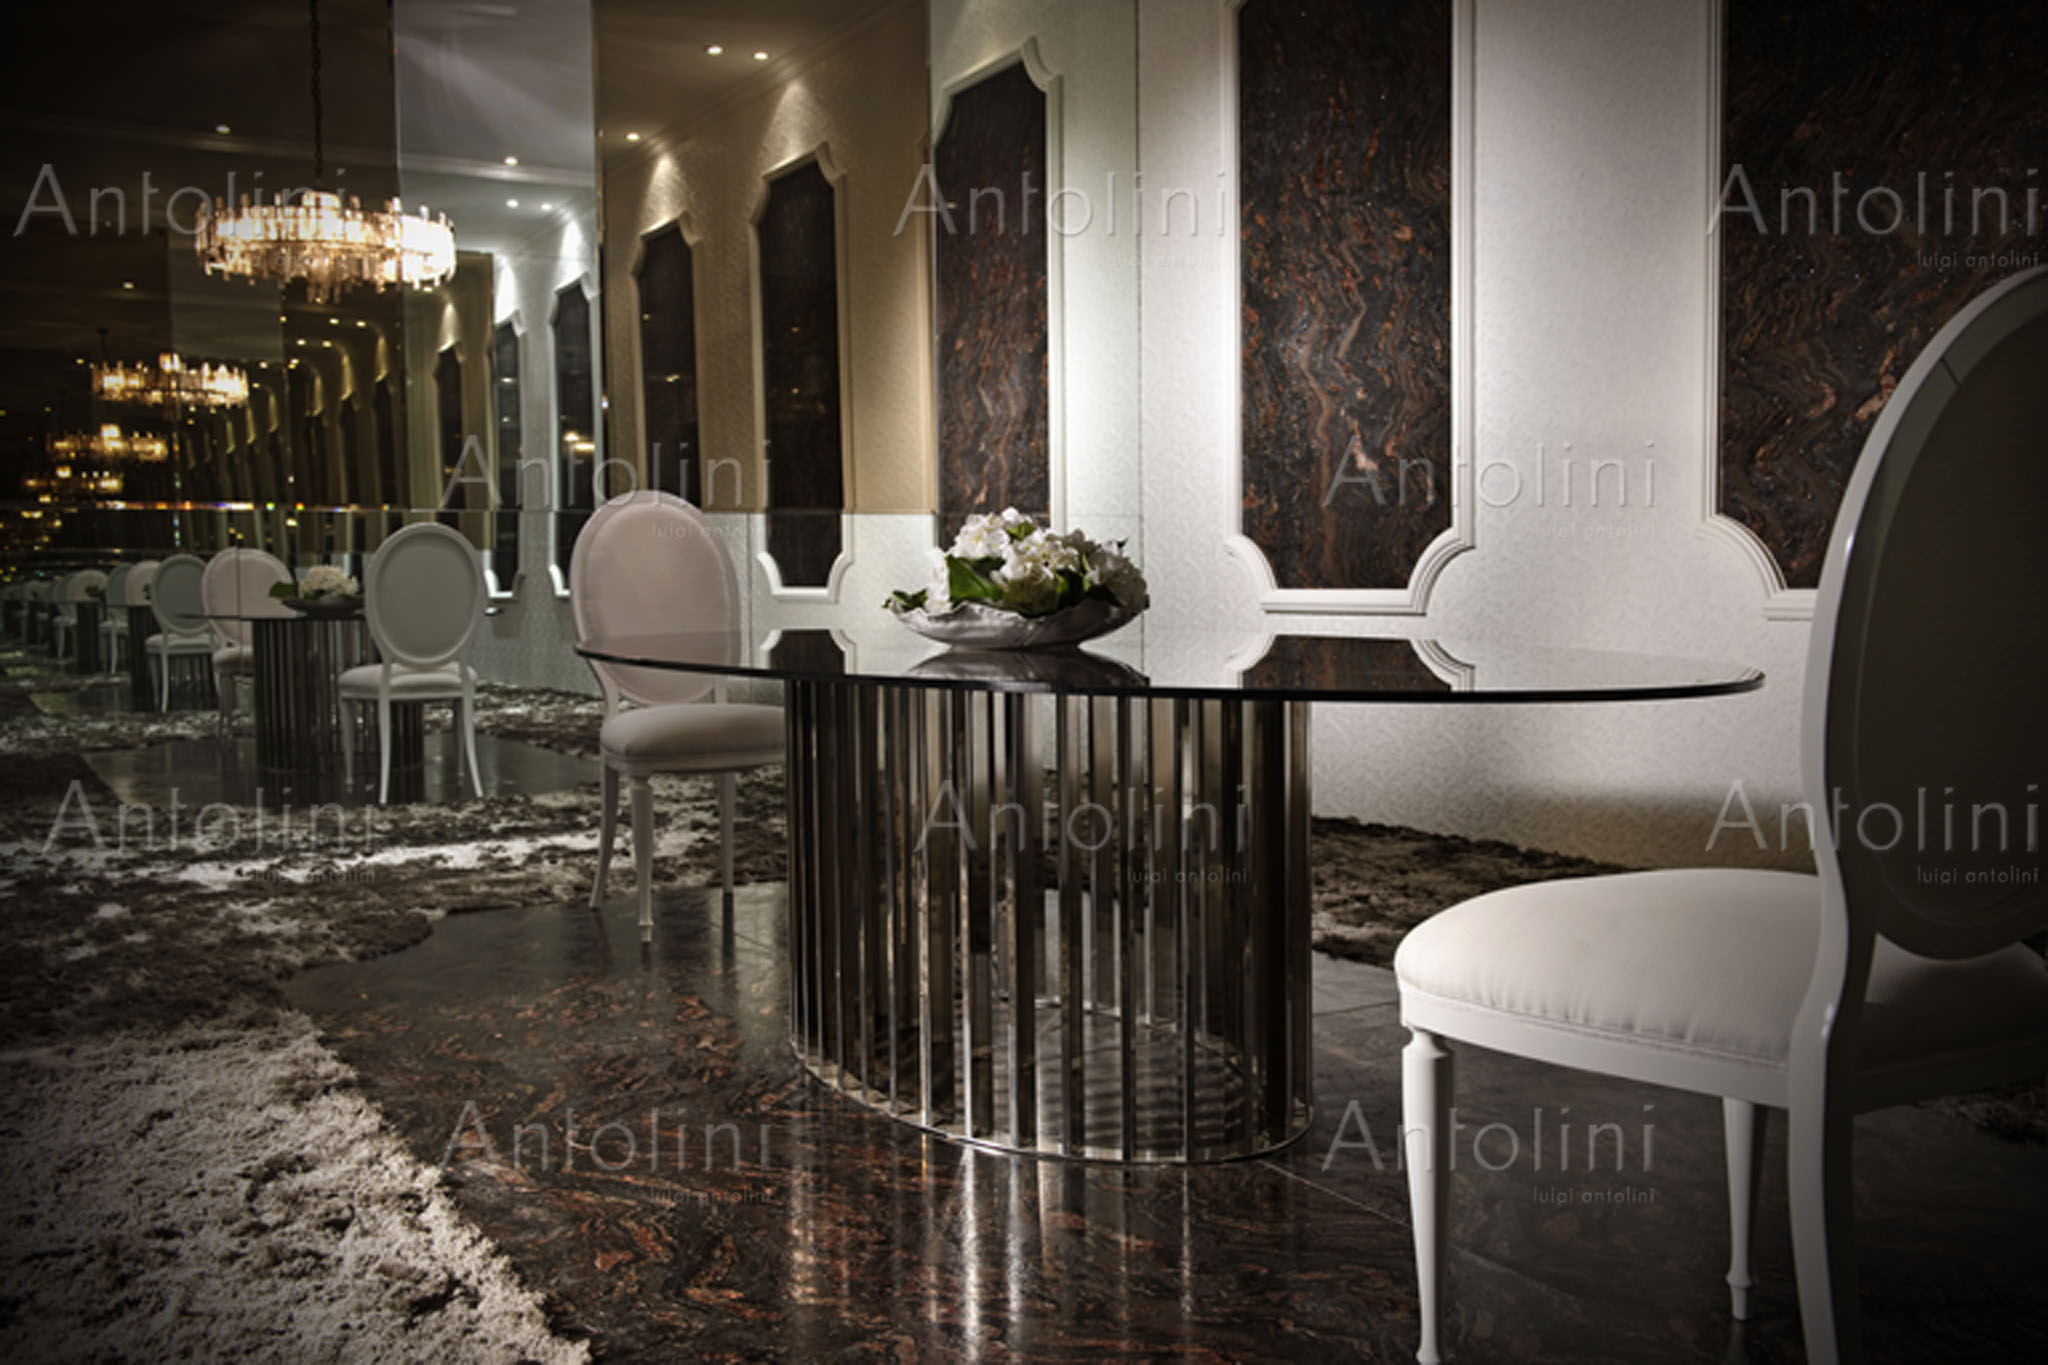 Black granite sparkle floor tiles tile designs black granite sparkle floor tiles tile designs dailygadgetfo Image collections